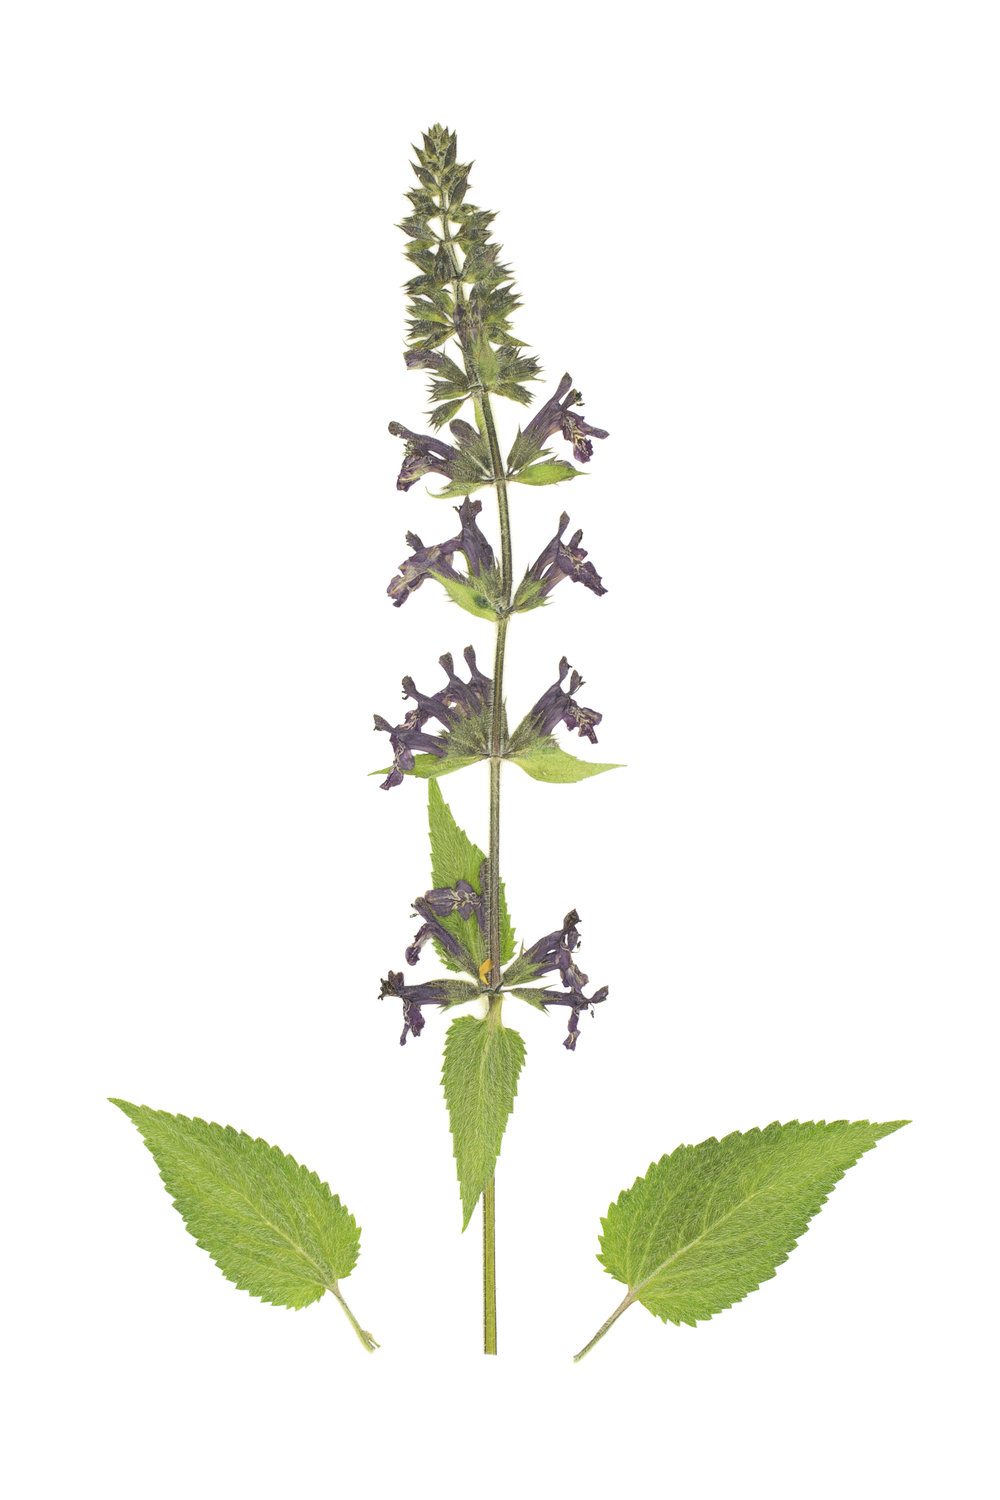 Stachys sylvatica / Hedge Woundwort